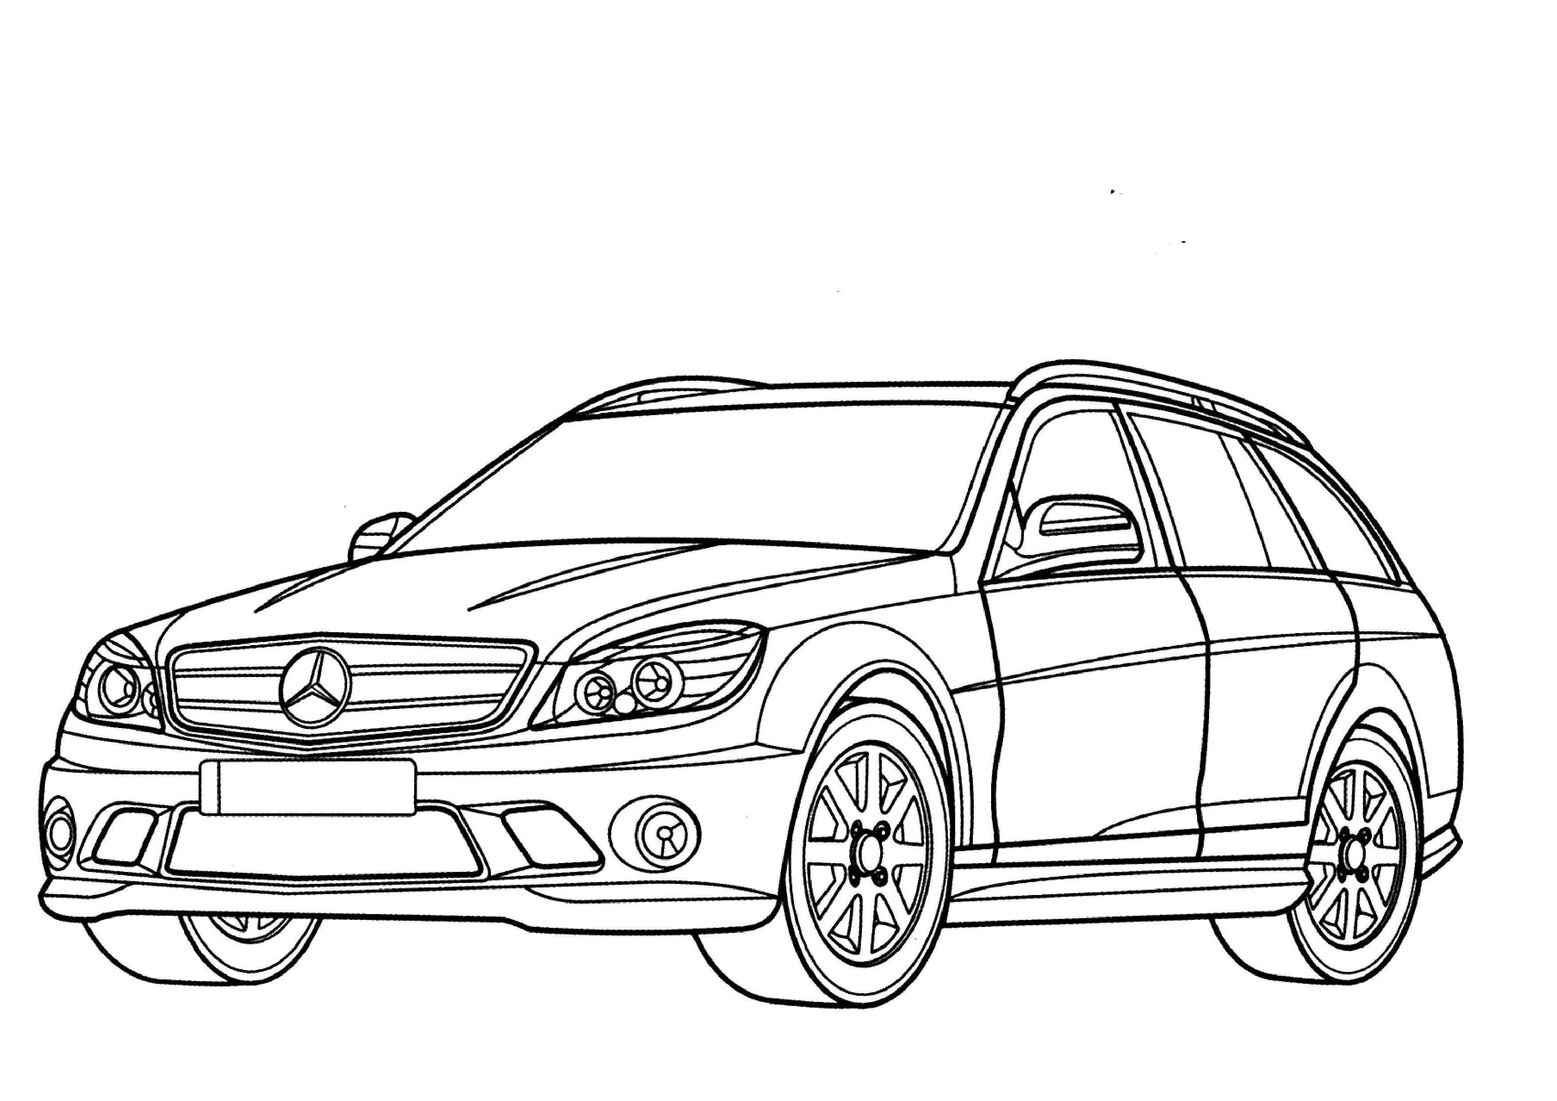 Mercedes Benz C Class Wagon Coloring Page